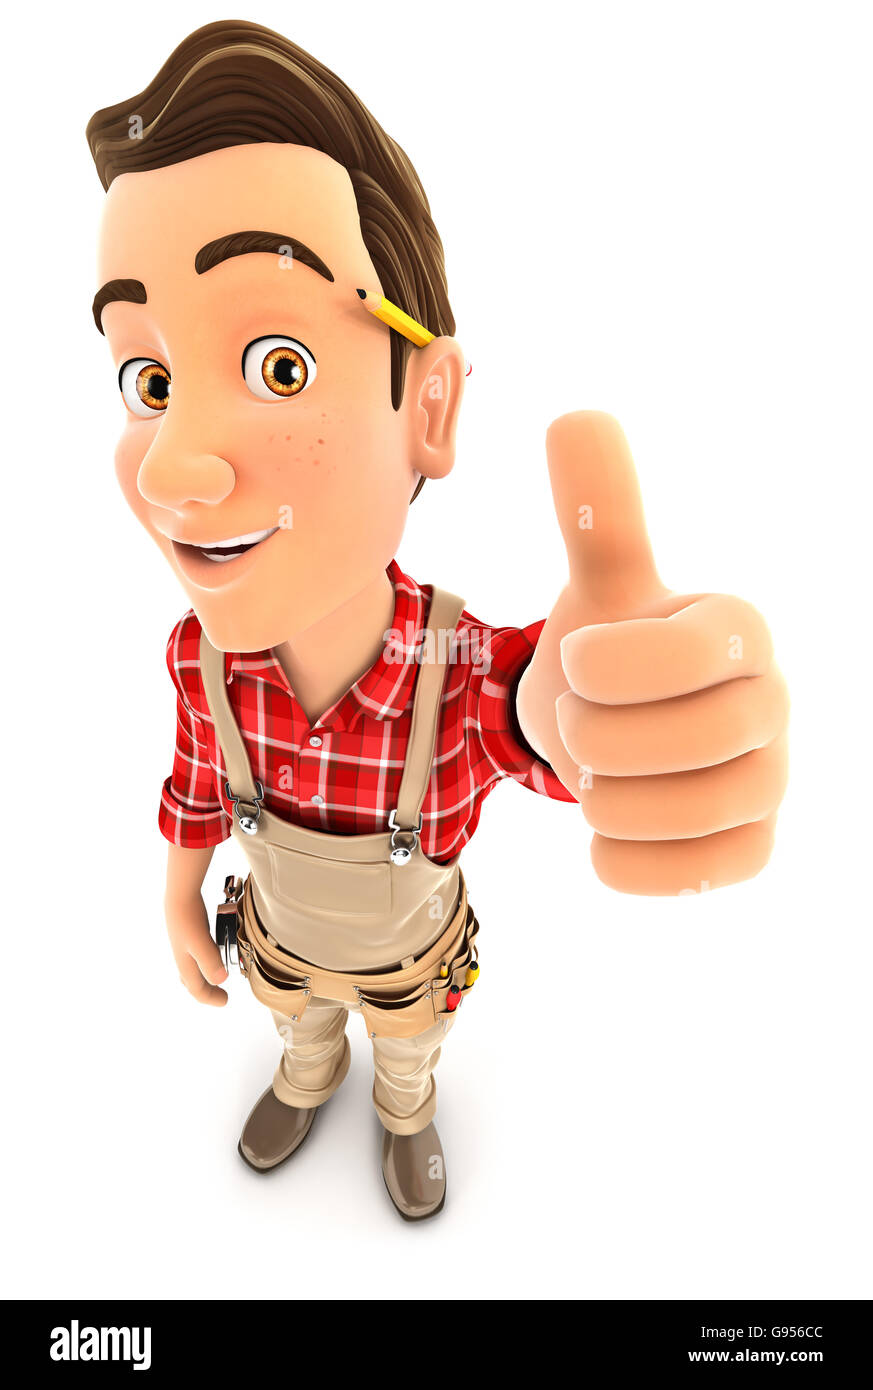 3d handyman positive pose with thumb up, illustration with isolated white background Stock Photo